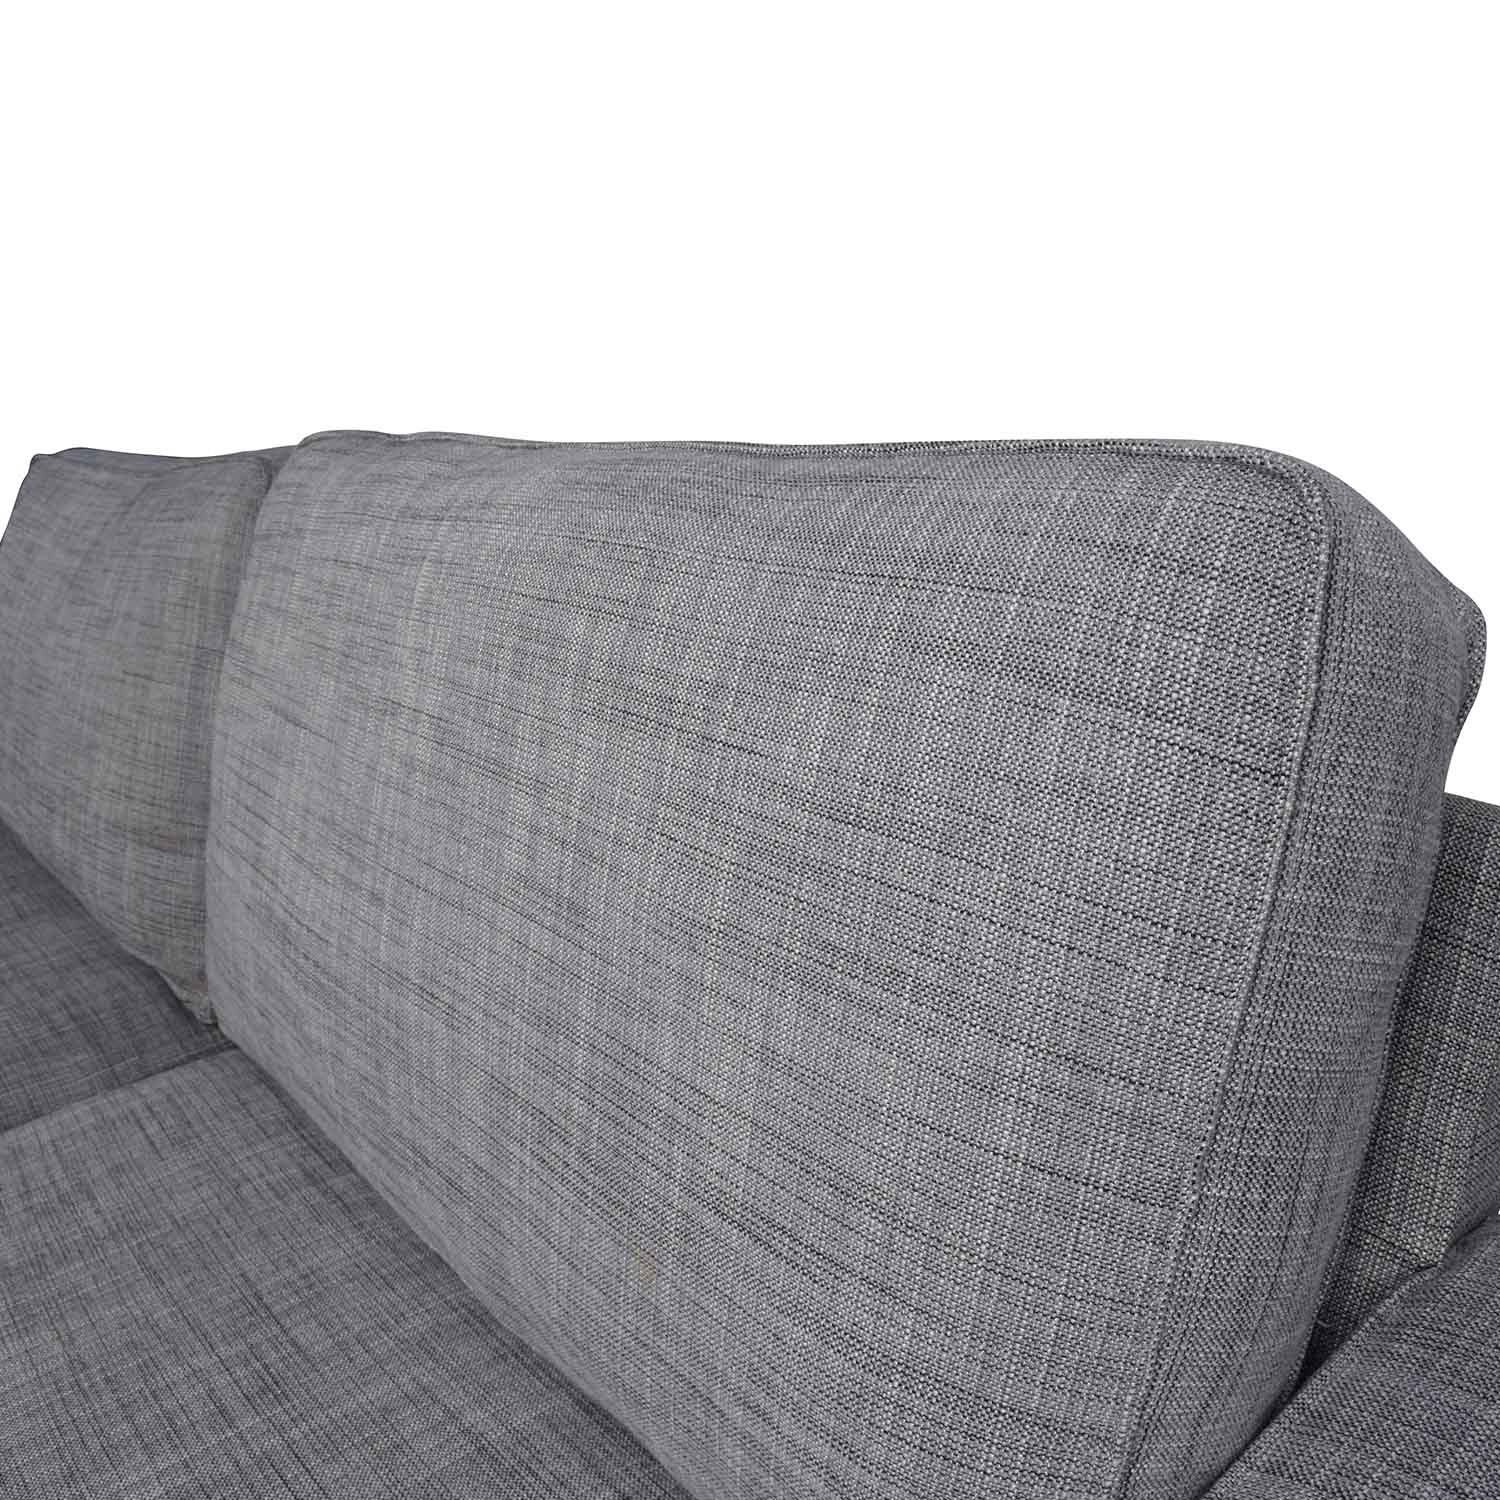 38 off ikea ikea kivik gray sofa sofas for Ikea gray sofa